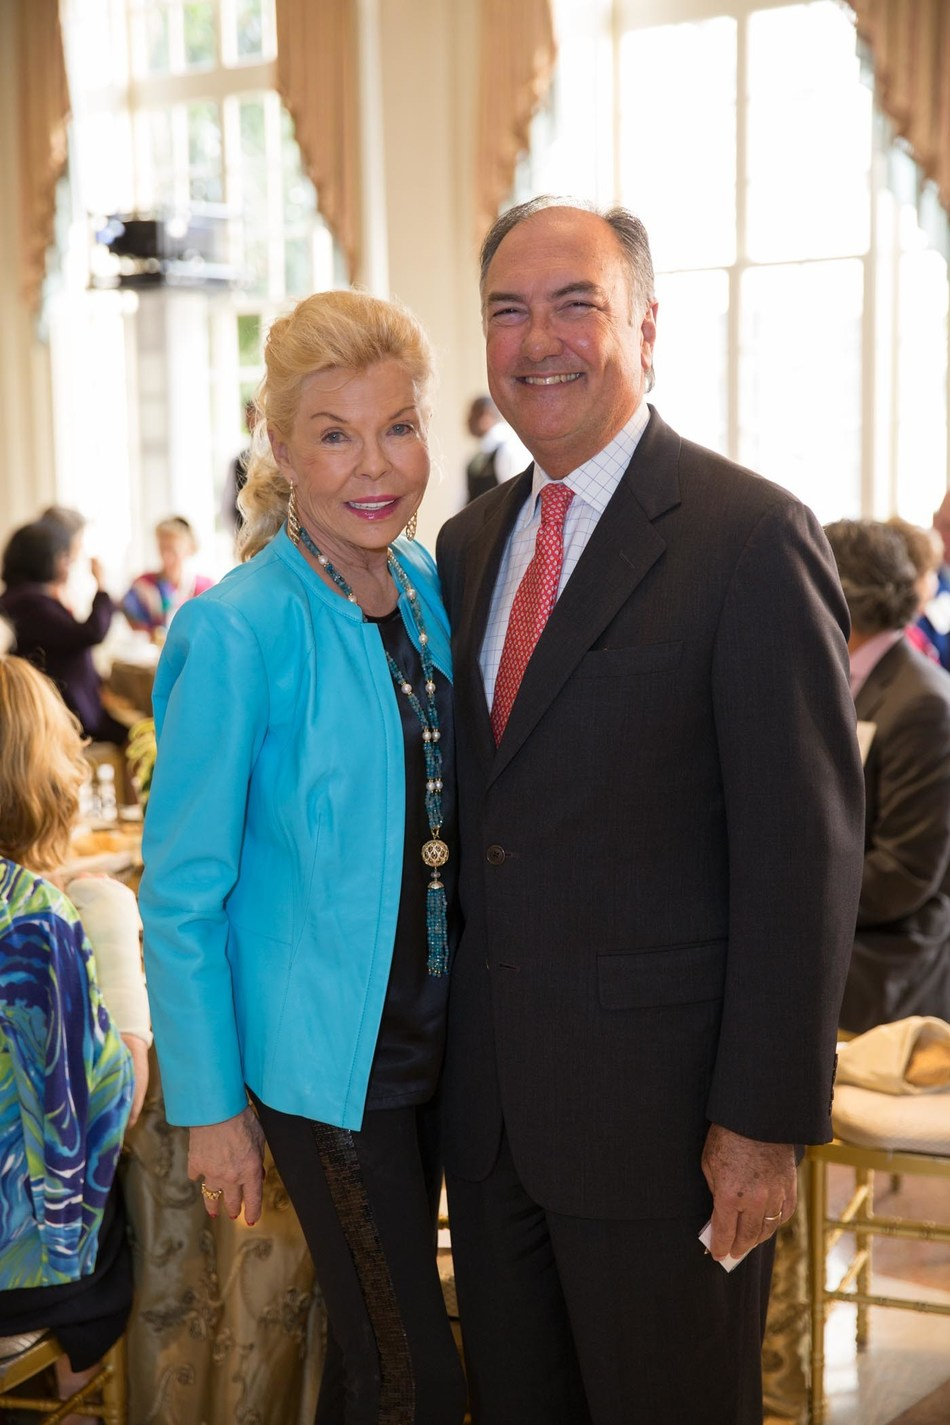 Lois Pope with Dr. Eduardo C. Alfonso, Director of Bascom Palmer Eye Institute at the University of Miami